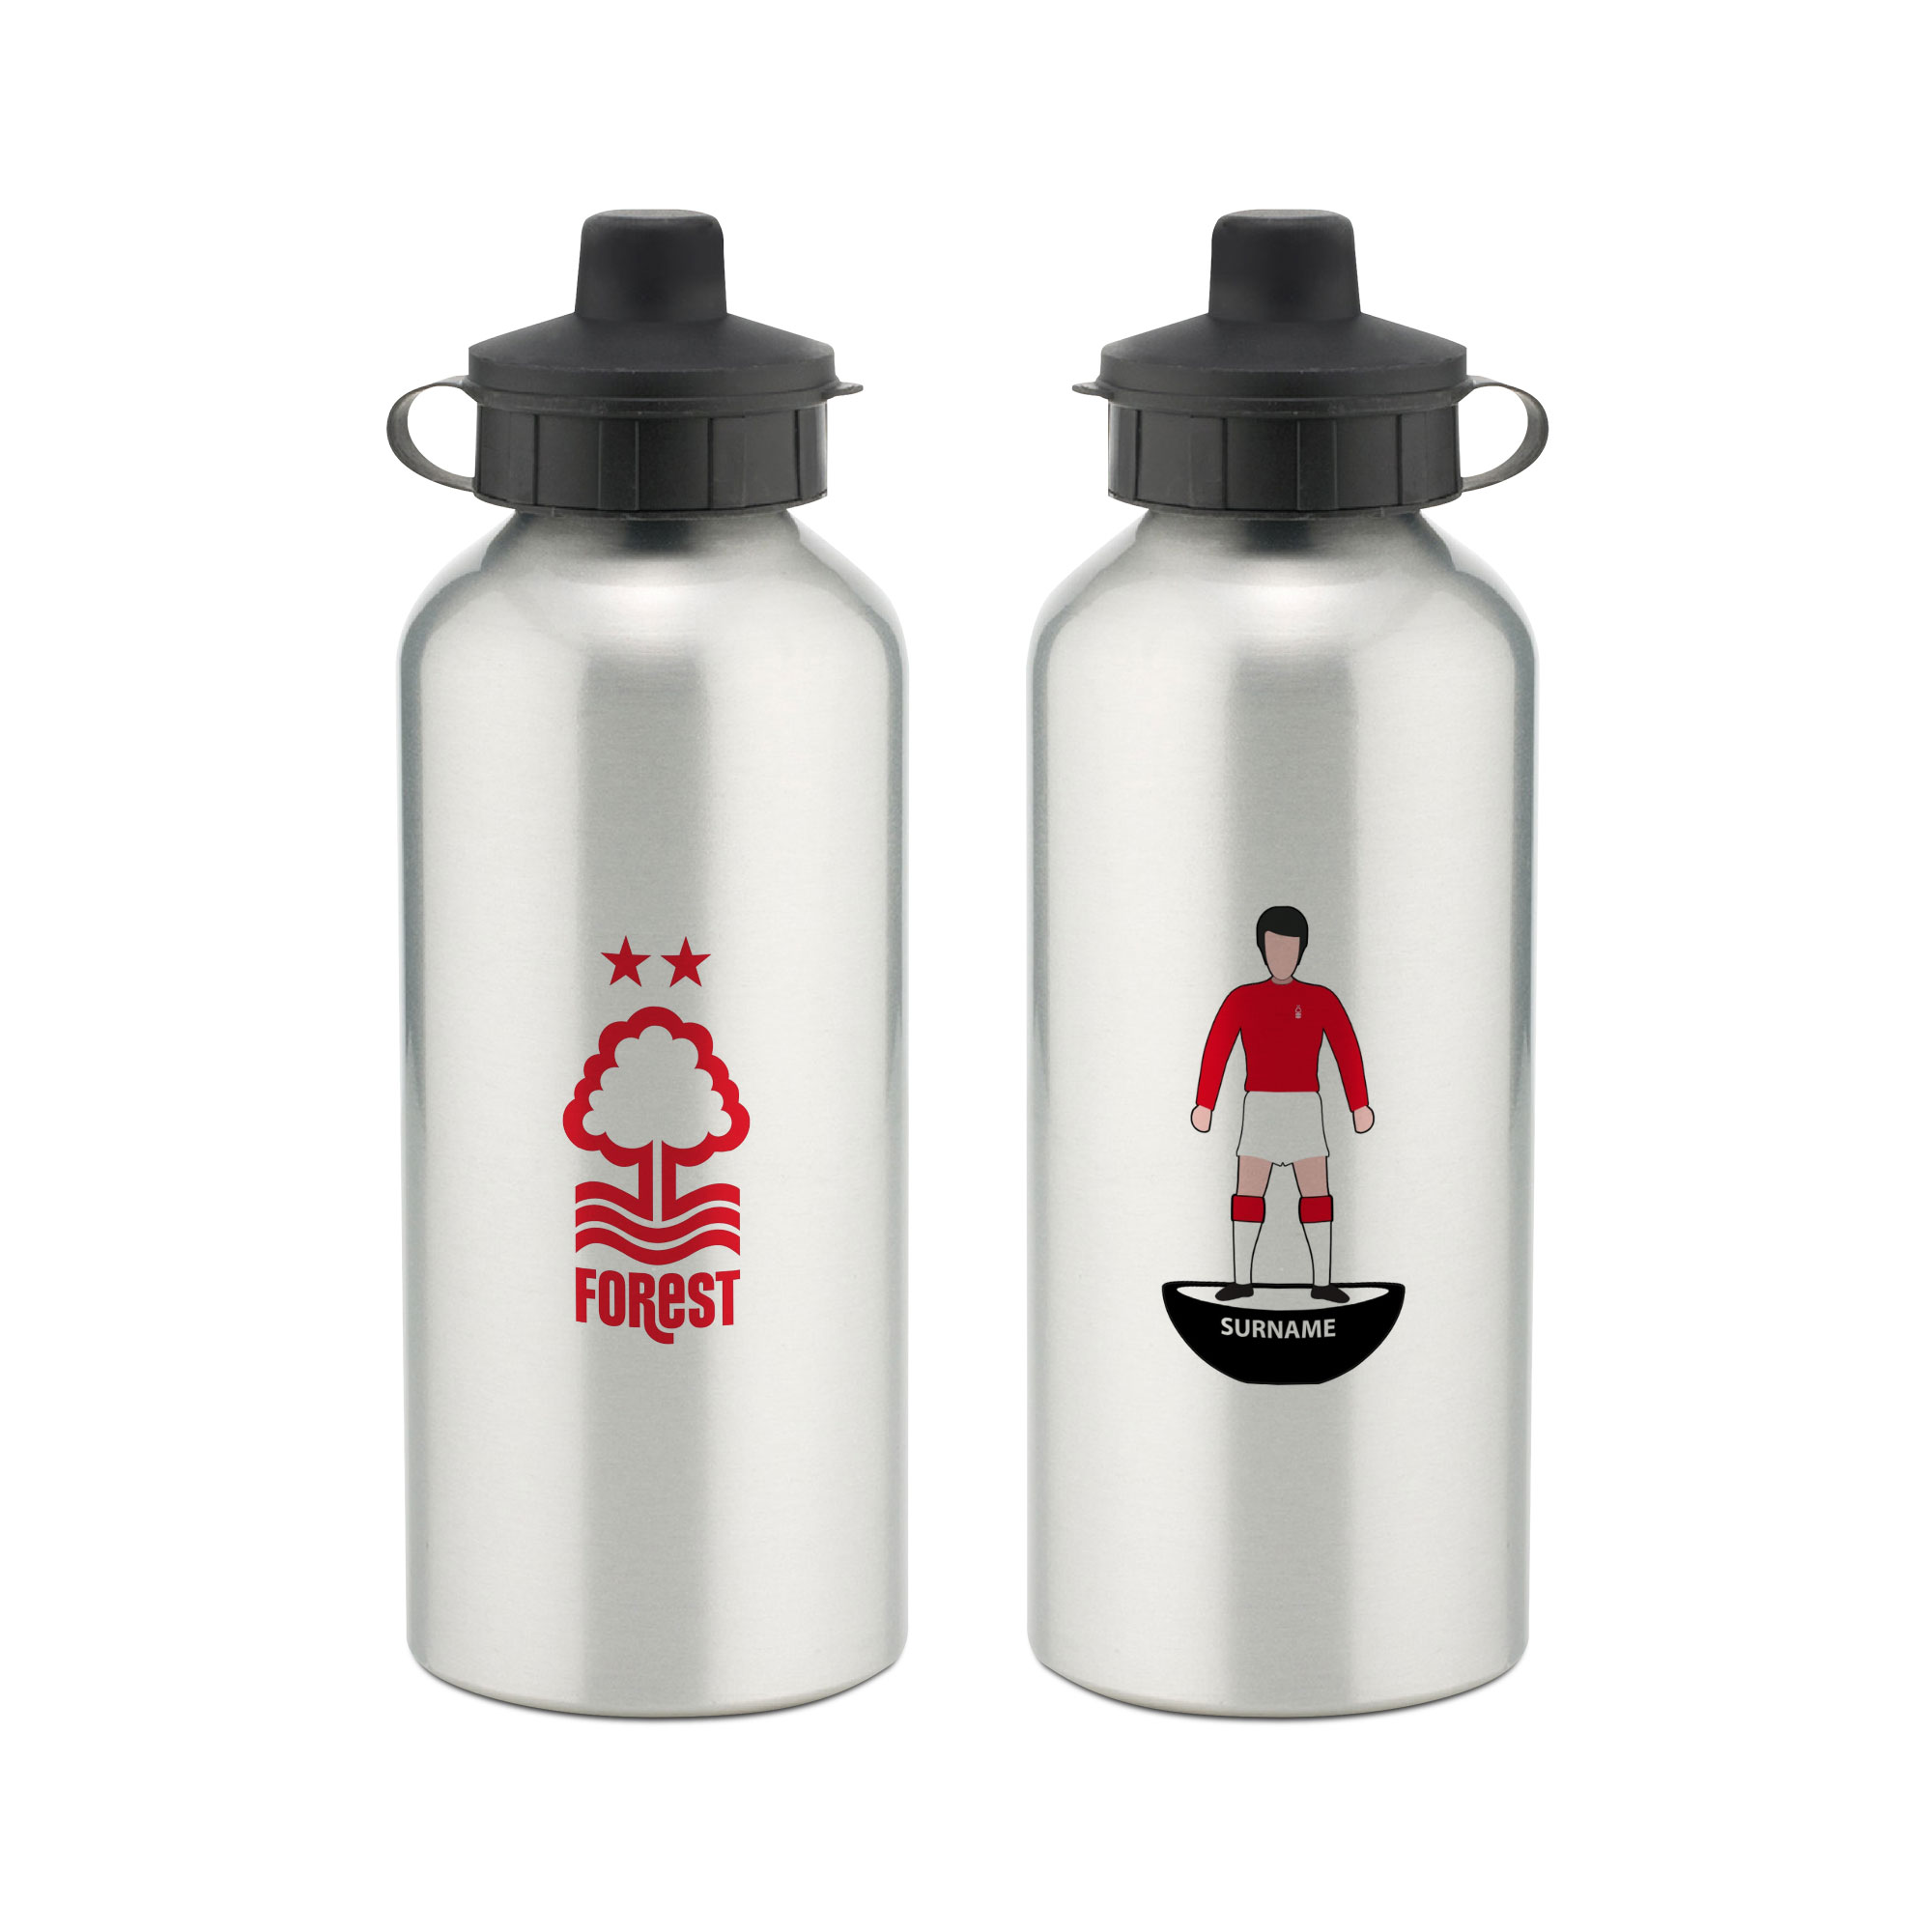 Nottingham Forest FC Player Figure Water Bottle